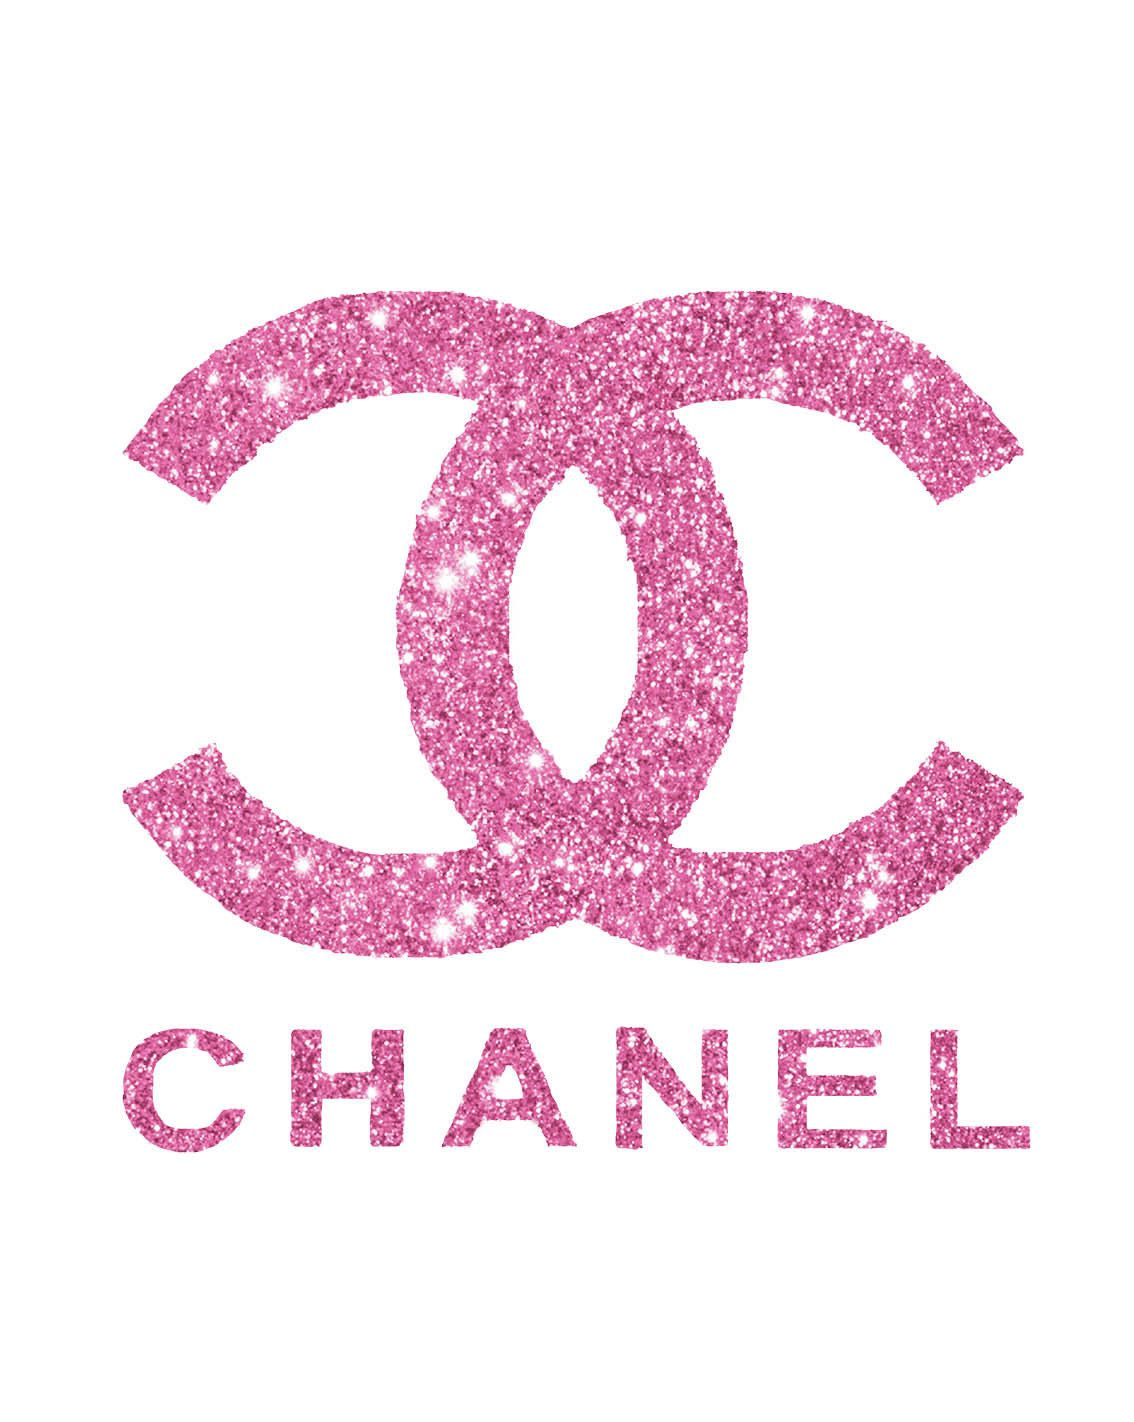 I love the chanel logo and the chanel products i have seen like i love the chanel logo and the chanel products i have seen like purses and shoes and such are really cool free cuts pinterest chanel logo biocorpaavc Gallery